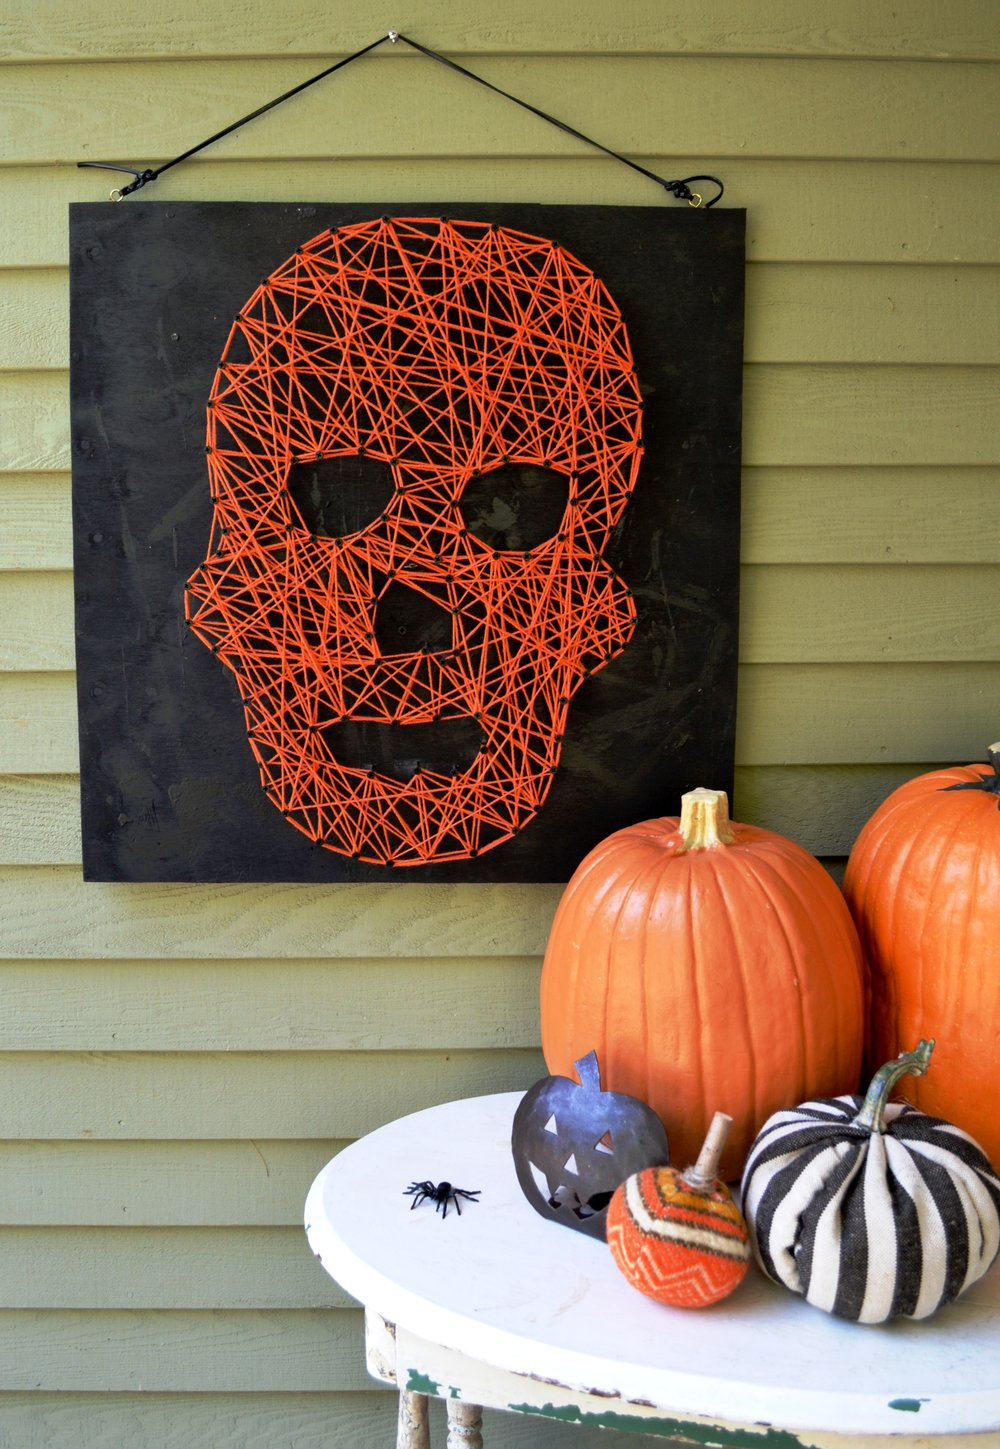 This Halloween Skull wall hanging took me less than 2 hours. I used a scrap of plywood we had lying around-- painted it black and then outlined a skull head in chalk, then using my drill, screwed in screws (only 1/2 way) and then wrapped the screws in orange yarn! Is there glow-in-the-dark yarn? Hmmmm...that would be cool too!